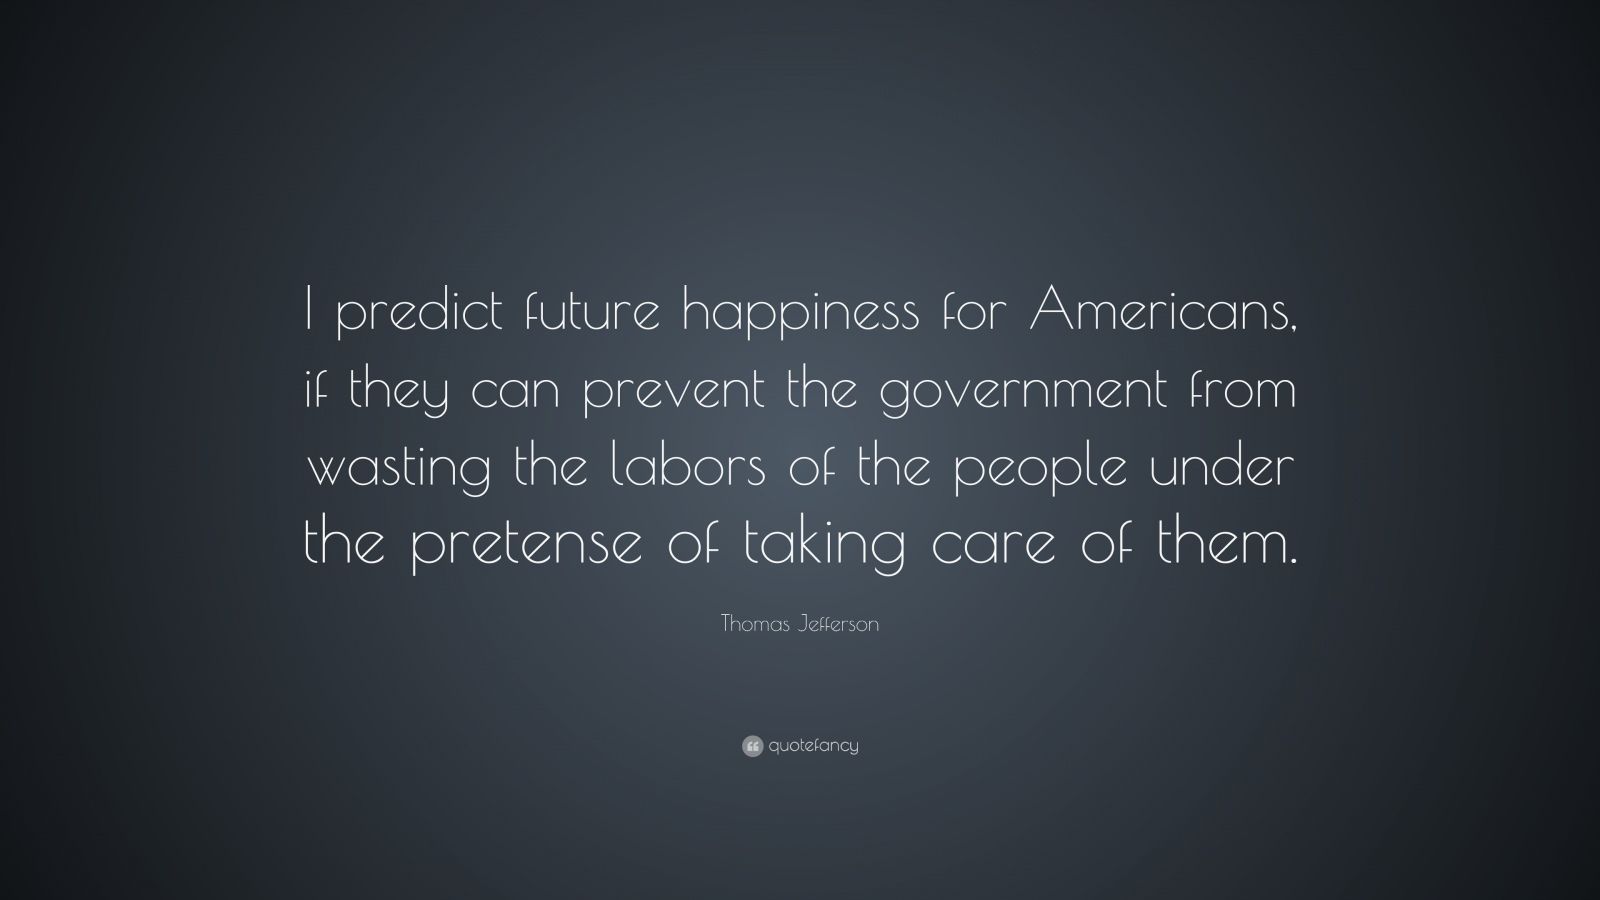 """Thomas Jefferson Quote: """"I predict future happiness for Americans, if they can prevent the government from wasting the labors of the people under the pretense of taking care of them."""""""